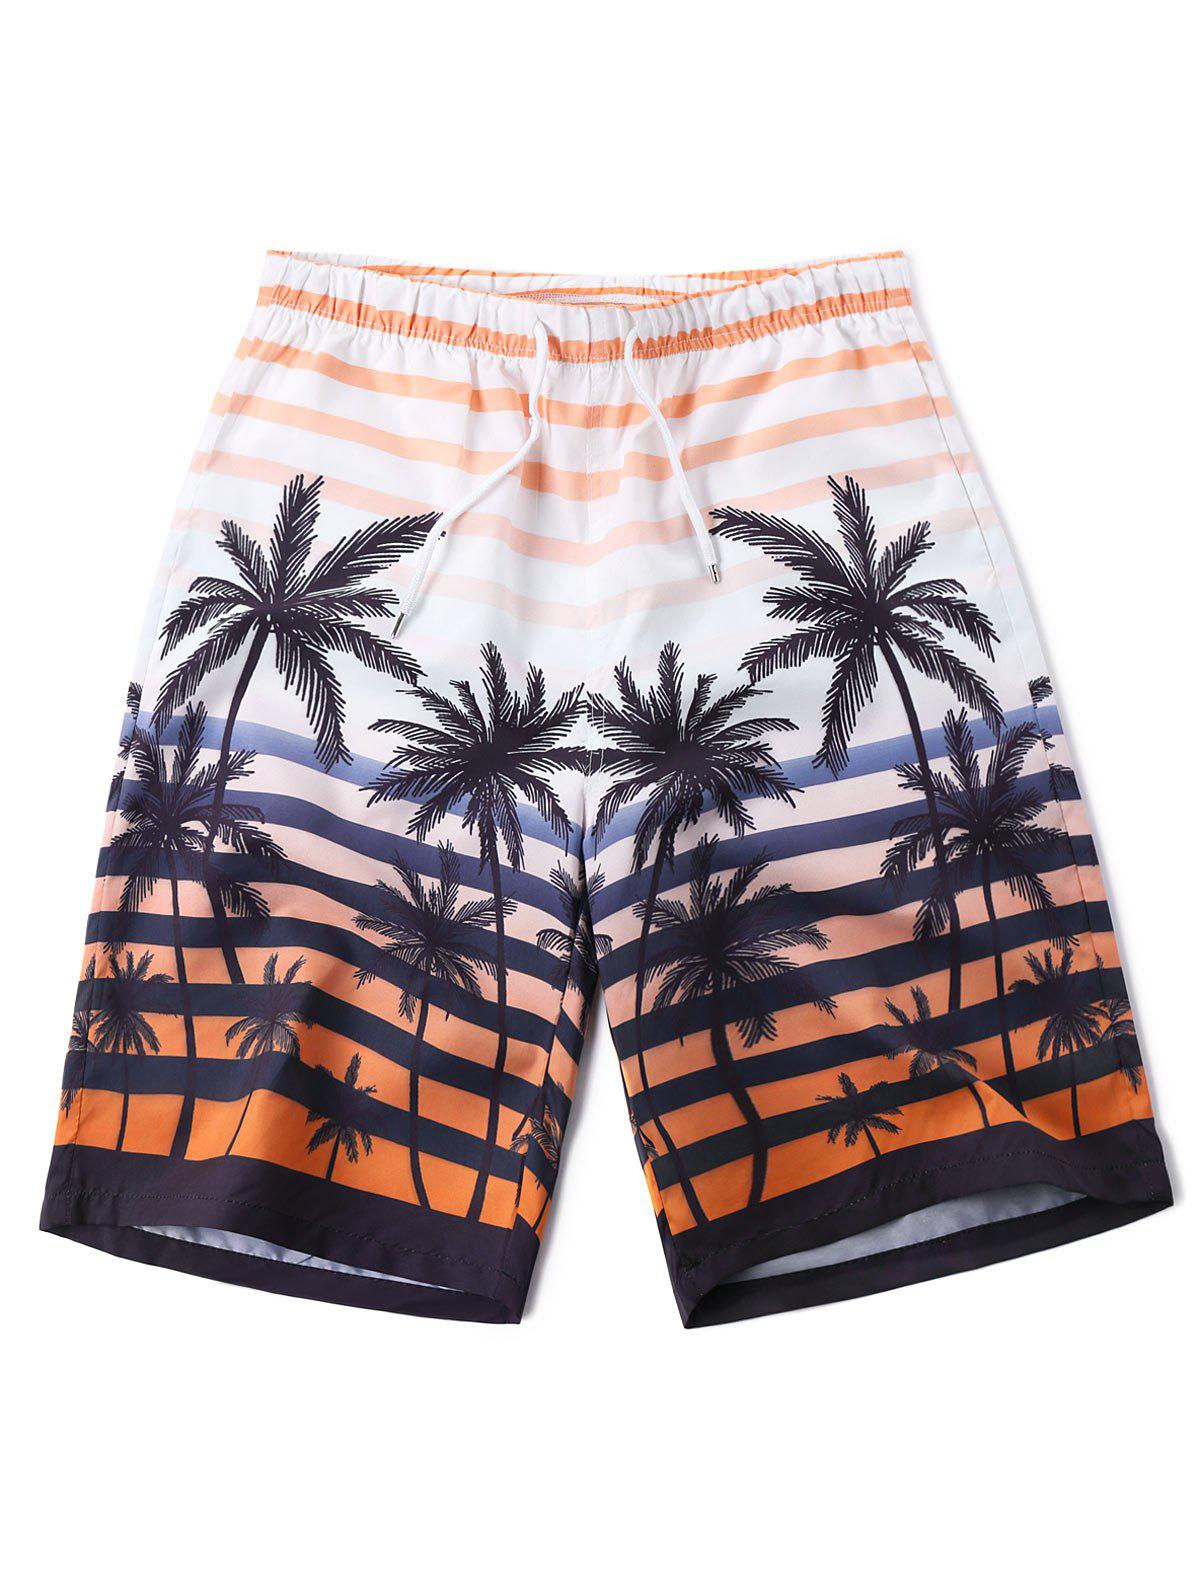 Coconut Tree Beach Bermuda Shorts elc молочный коктейль